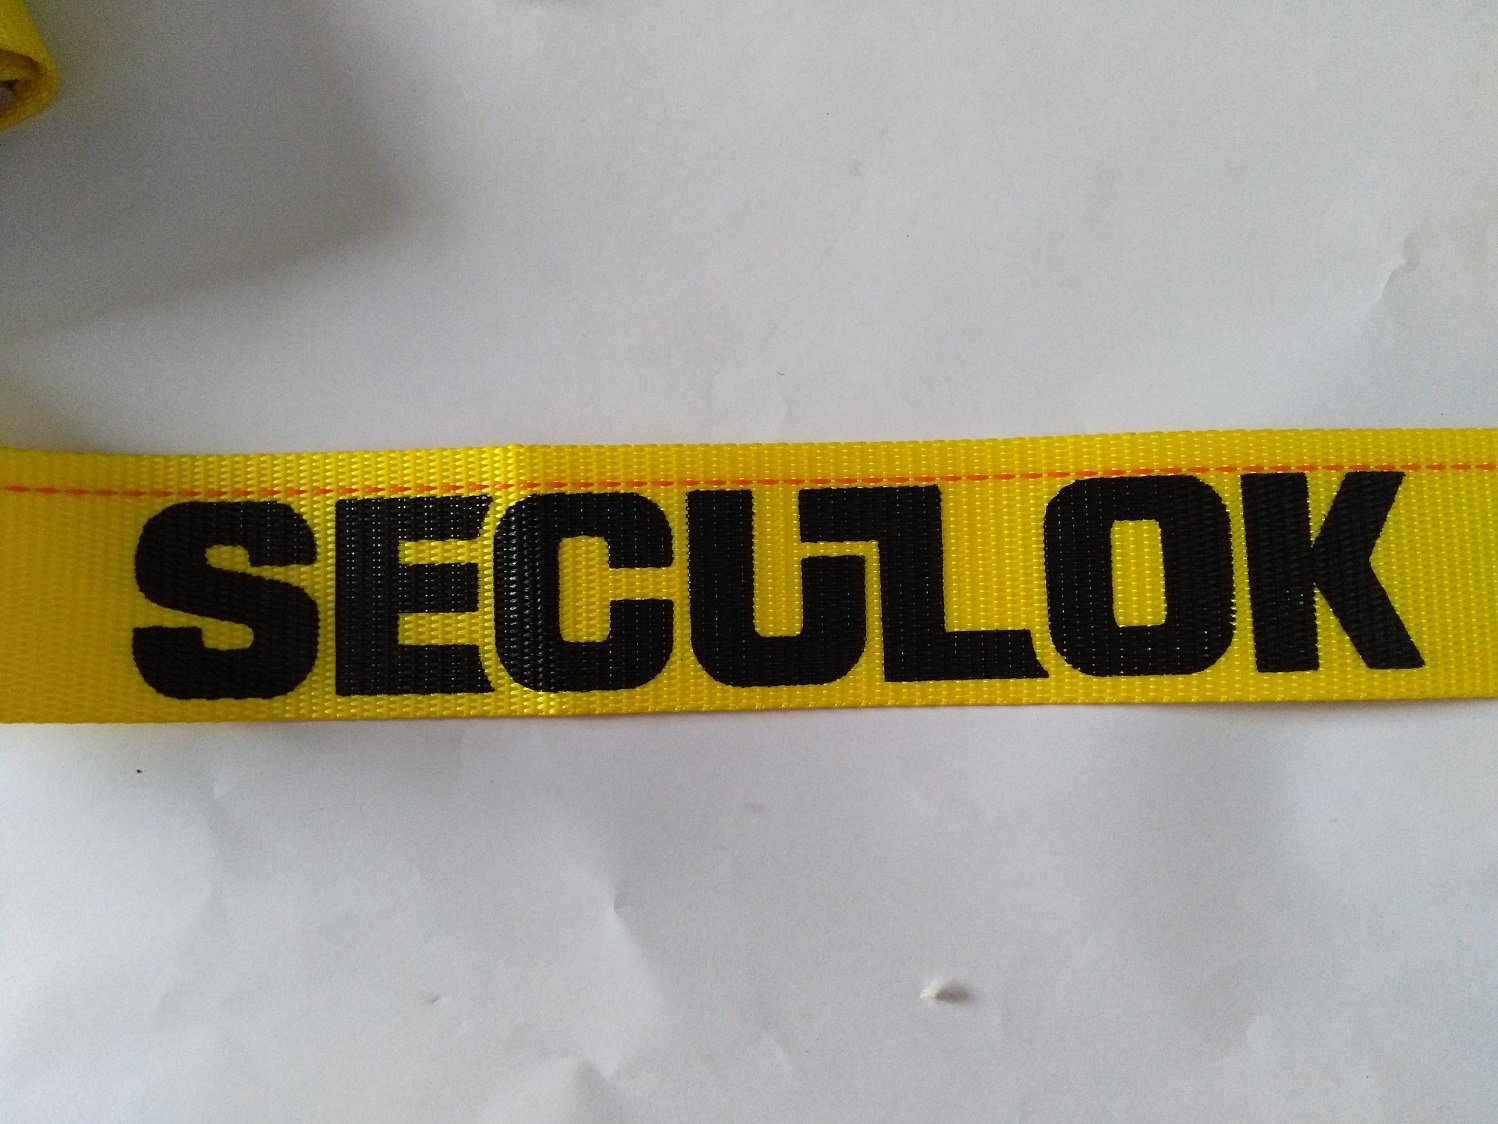 Seculok 2'' x 12' Logistic Ratchet Cargo Strap with E/A Series Spring Fitting by SECULOK (Image #2)